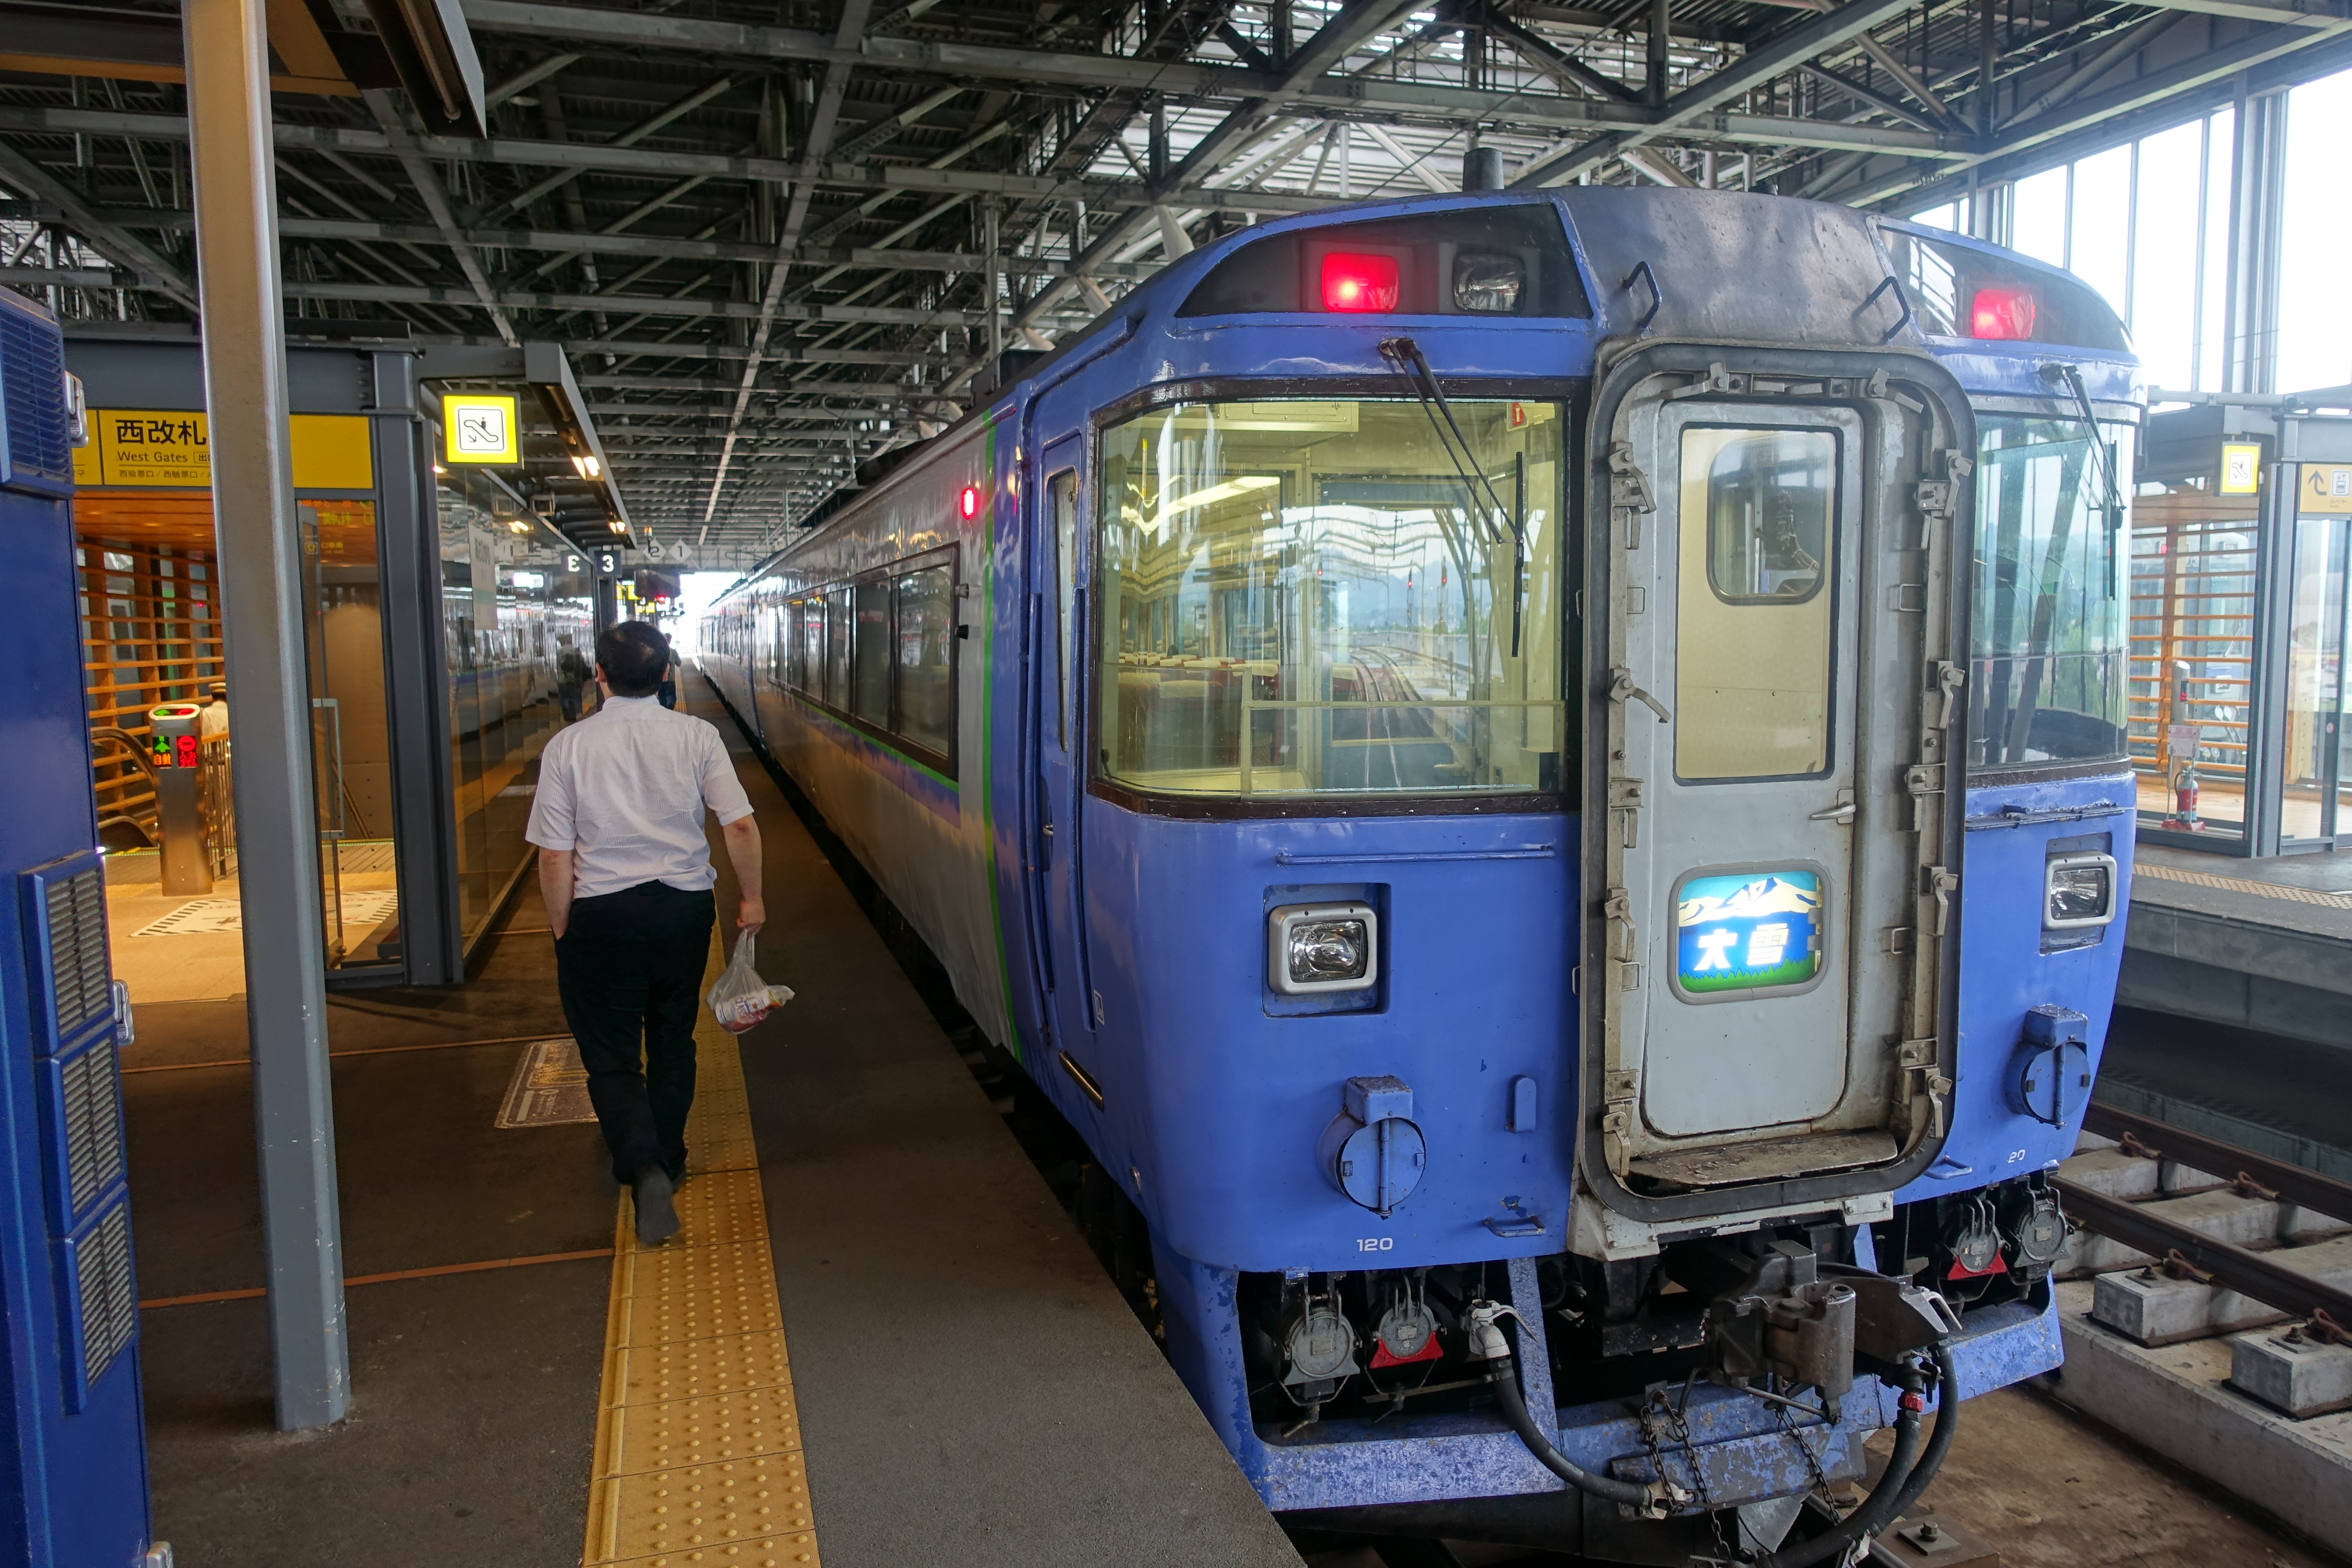 Train at station